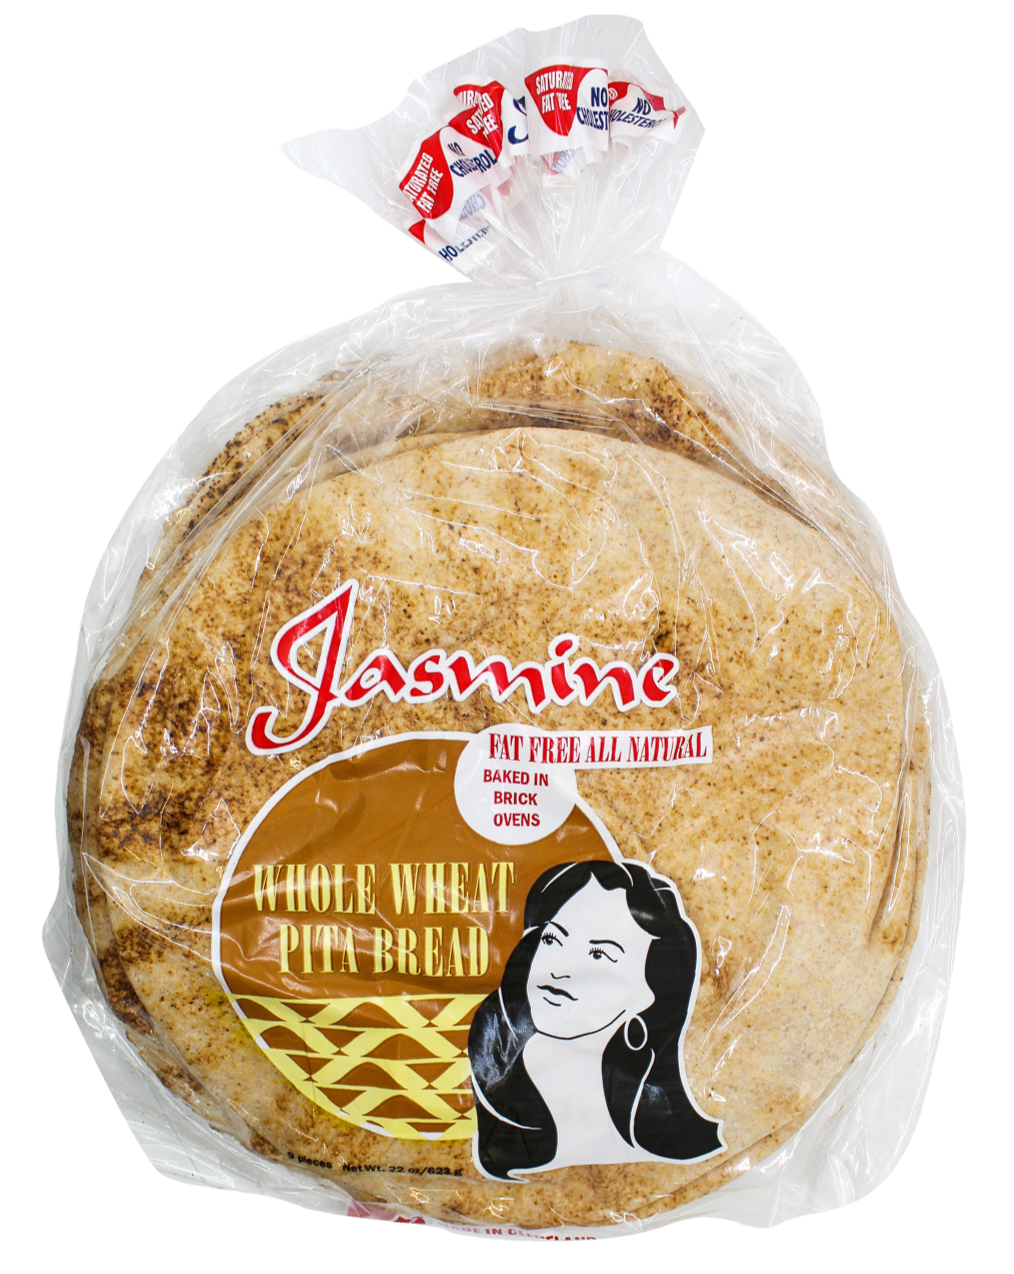 Jasmine Wheat Pita Bread